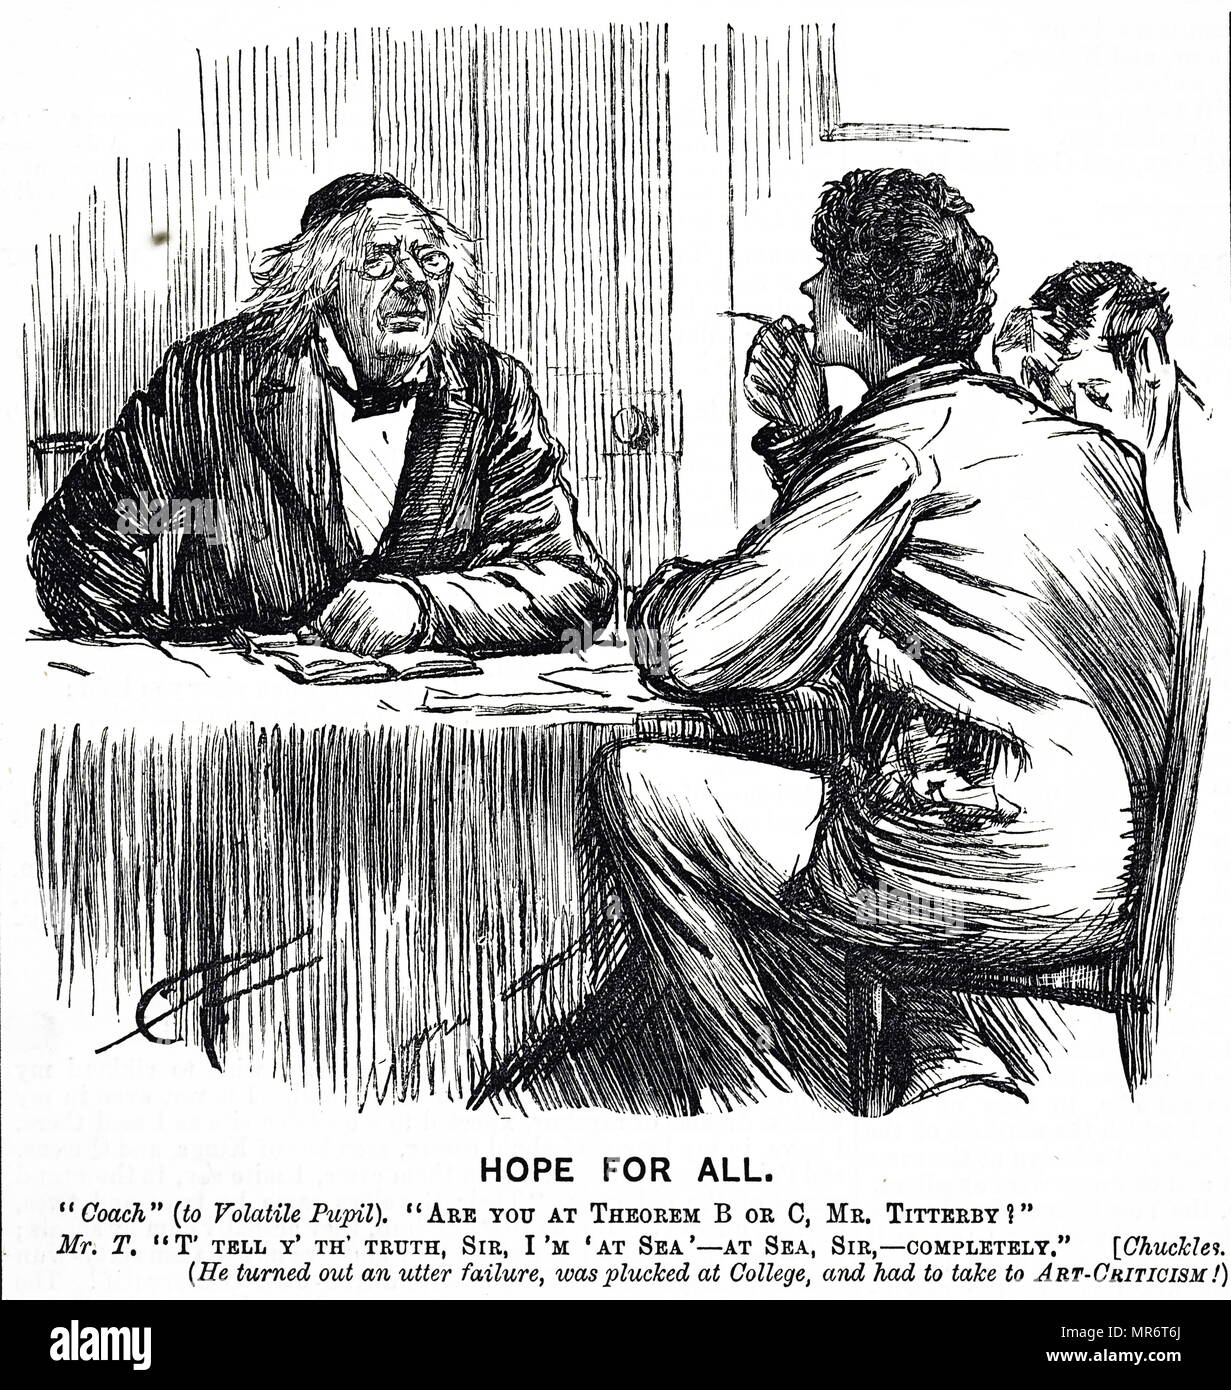 1887 cartoon illustration showing a teacher helping students to cram or fast learn, in order to take university entrance exams in England - Stock Image